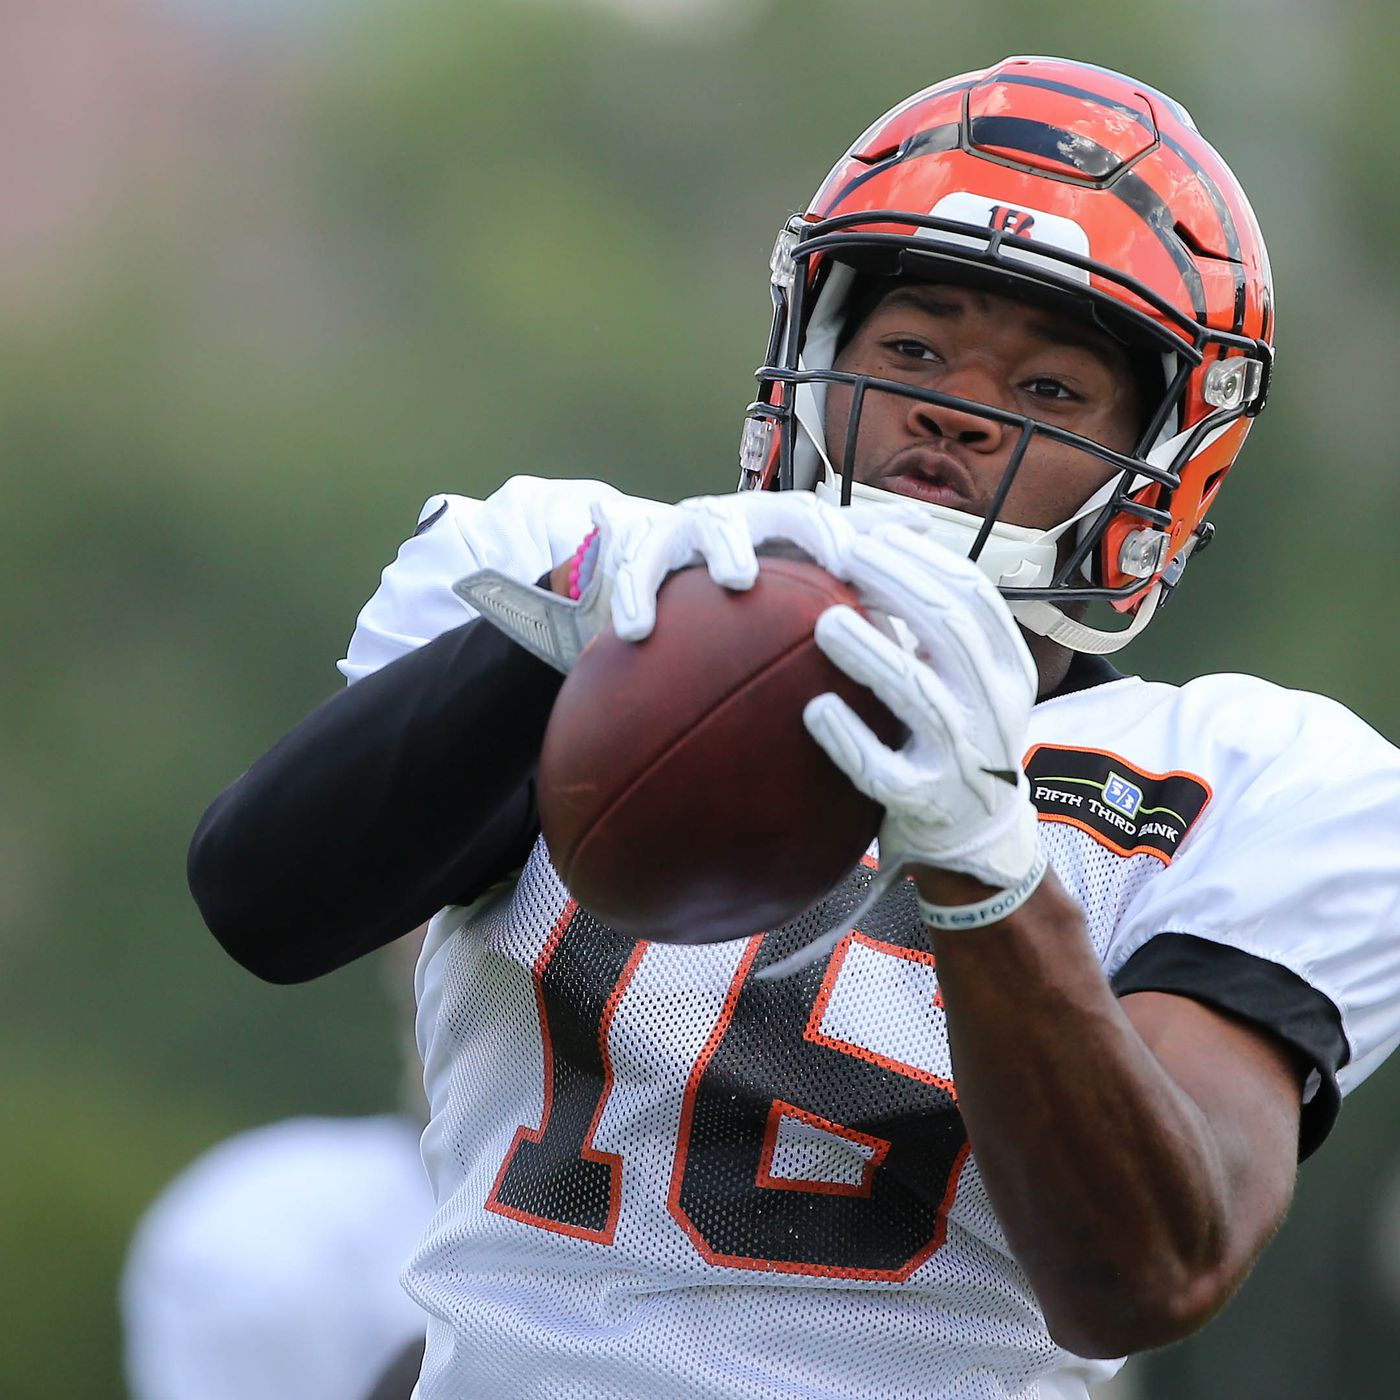 Bengals injury roundup: Cody Core out; John Ross in - Cincy Jungle